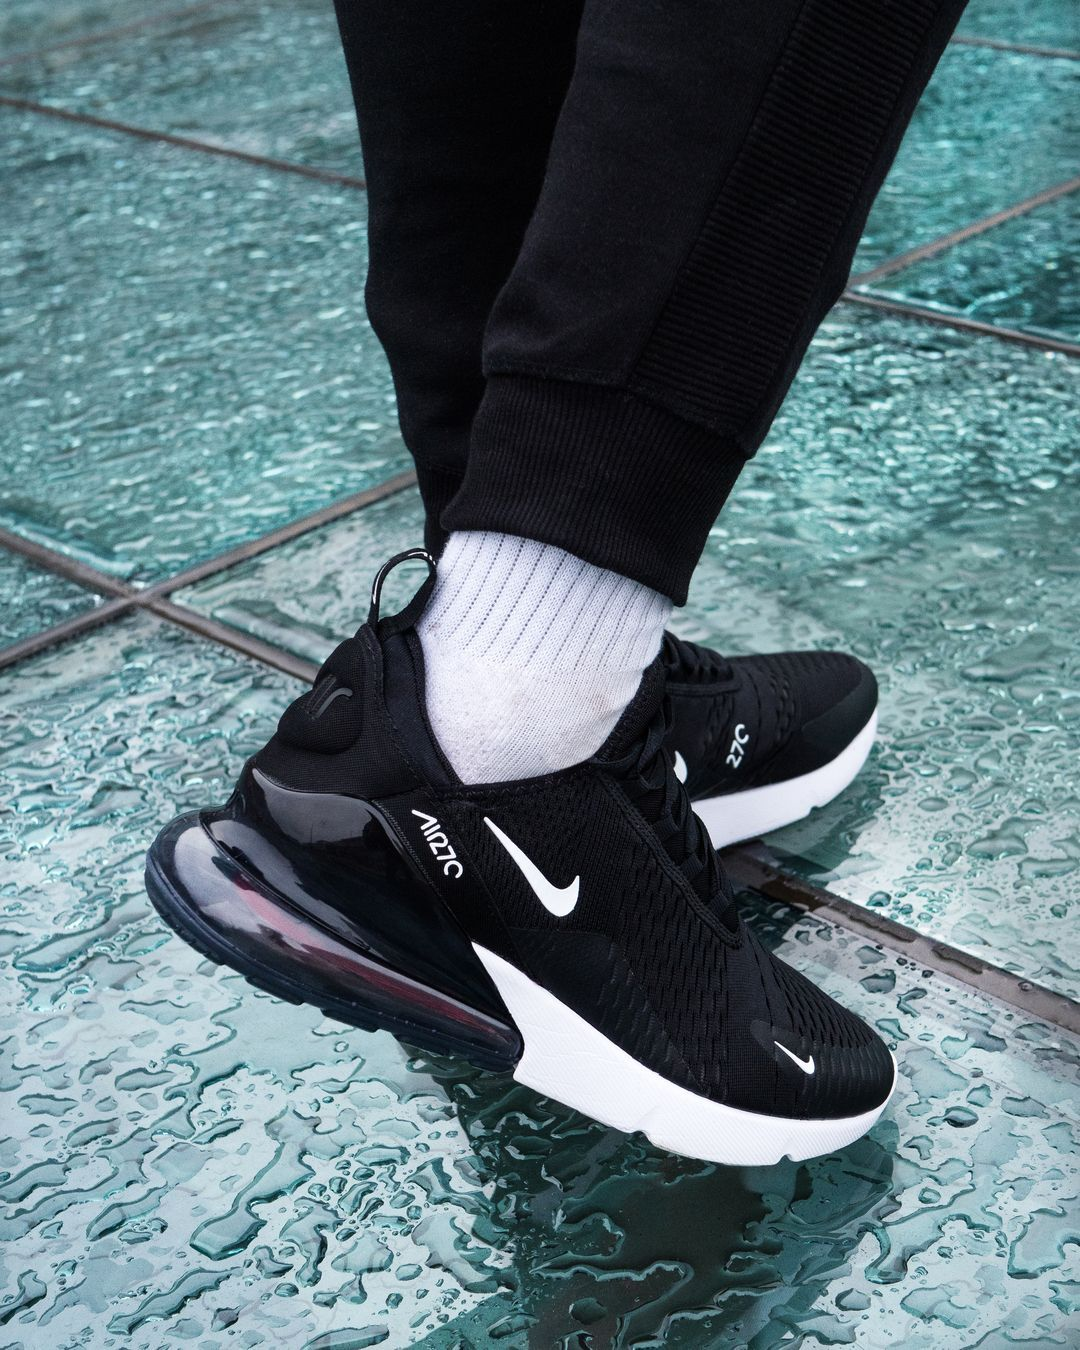 eddf2b0cb64 Nike Air Max 270 Black and Anthracite White